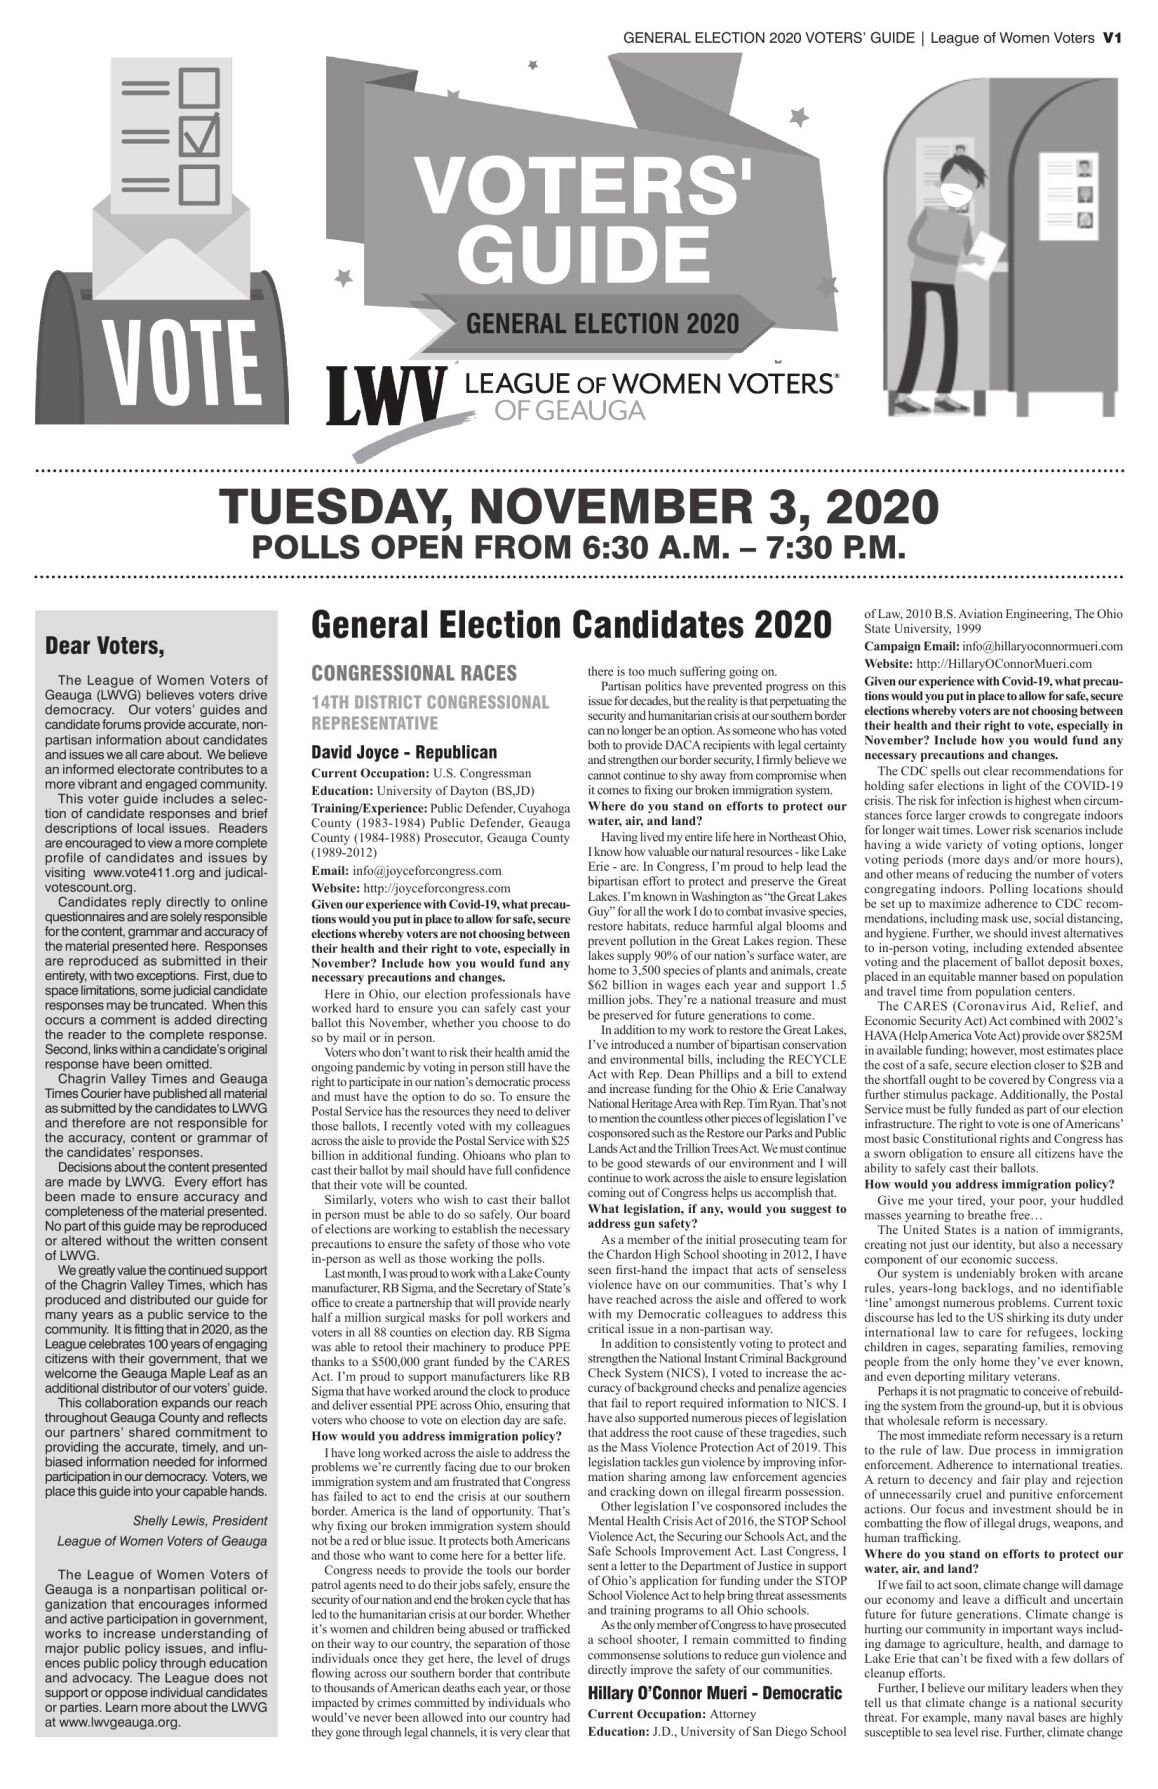 LWV Voters' Guide – General Election 2020